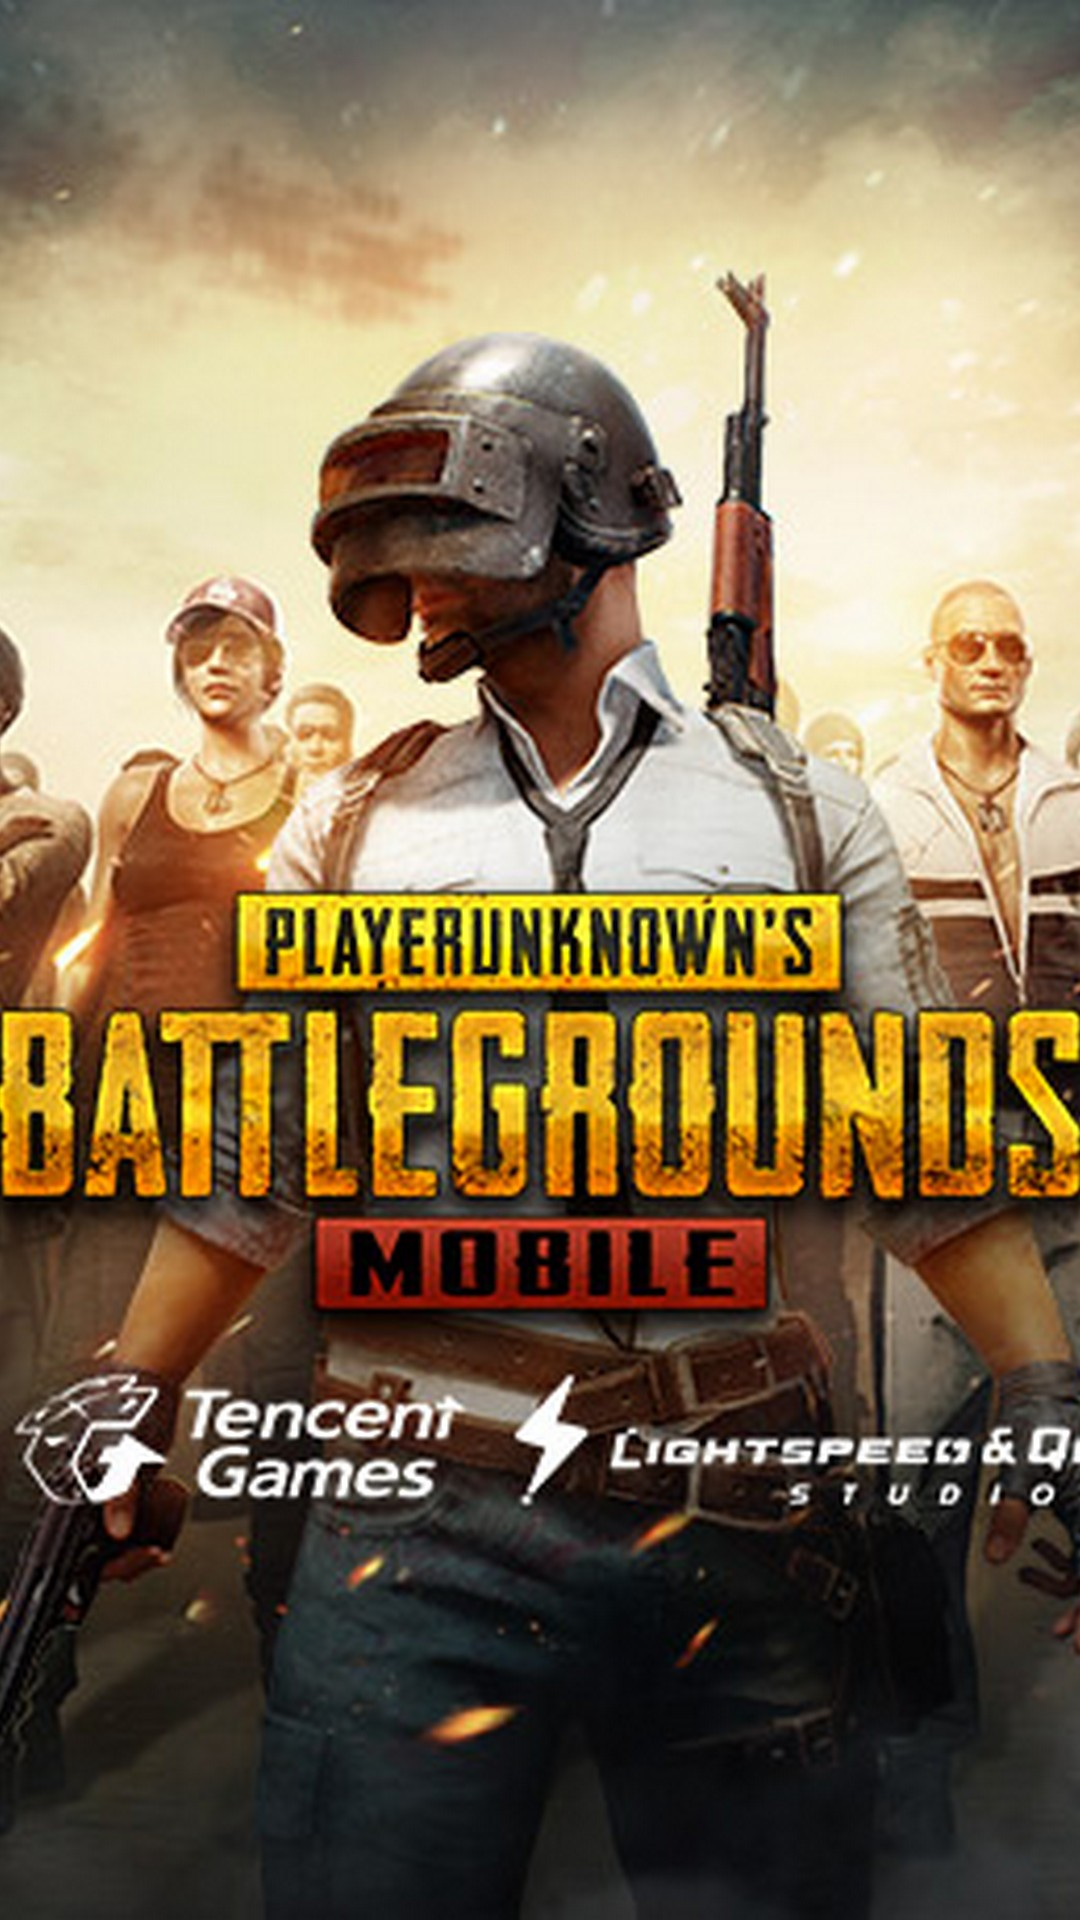 PUBG Mobile iPhone 7 Wallpaper 2020 Cute Wallpapers 1080x1920